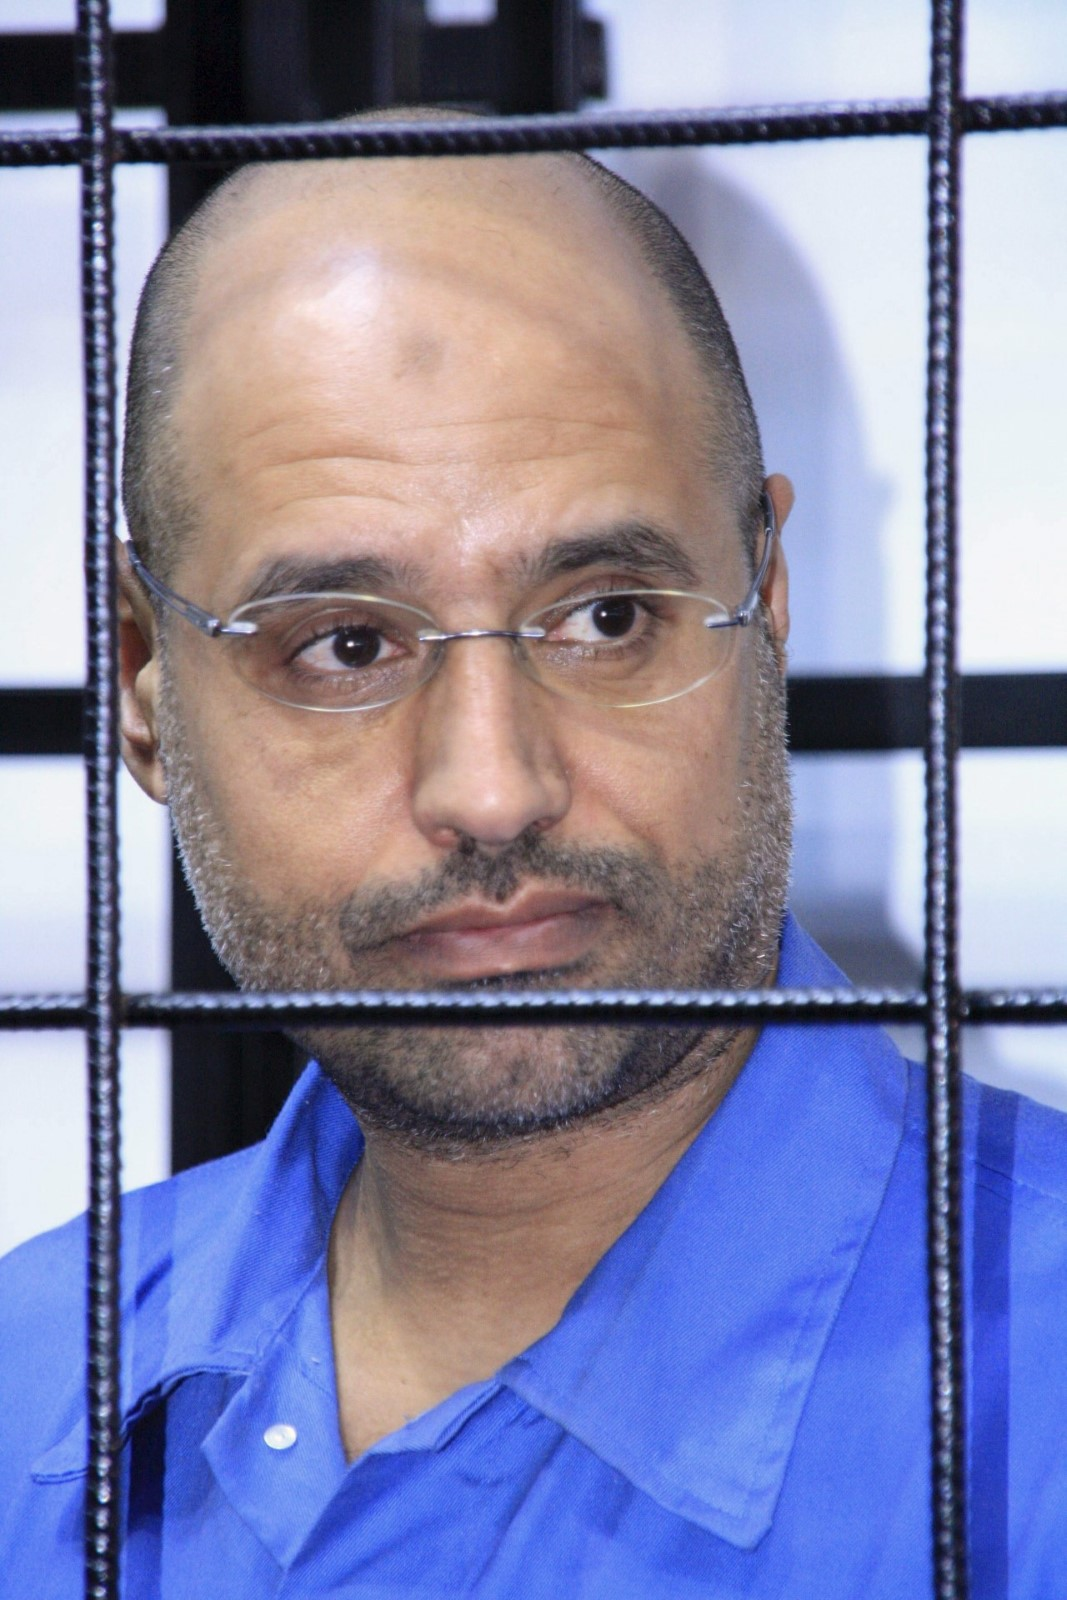 "gaddafi thesis Late last year, news emerged that saif al-islam gaddafi, the son of the former libyan dictator muammar gaddafi, is planning to be a candidate in the upcoming libyan presidential election according to basem al-hashemi al-soul, who spoke on saif gaddafi's behalf, ""saif al-islam gaddafi, the son."